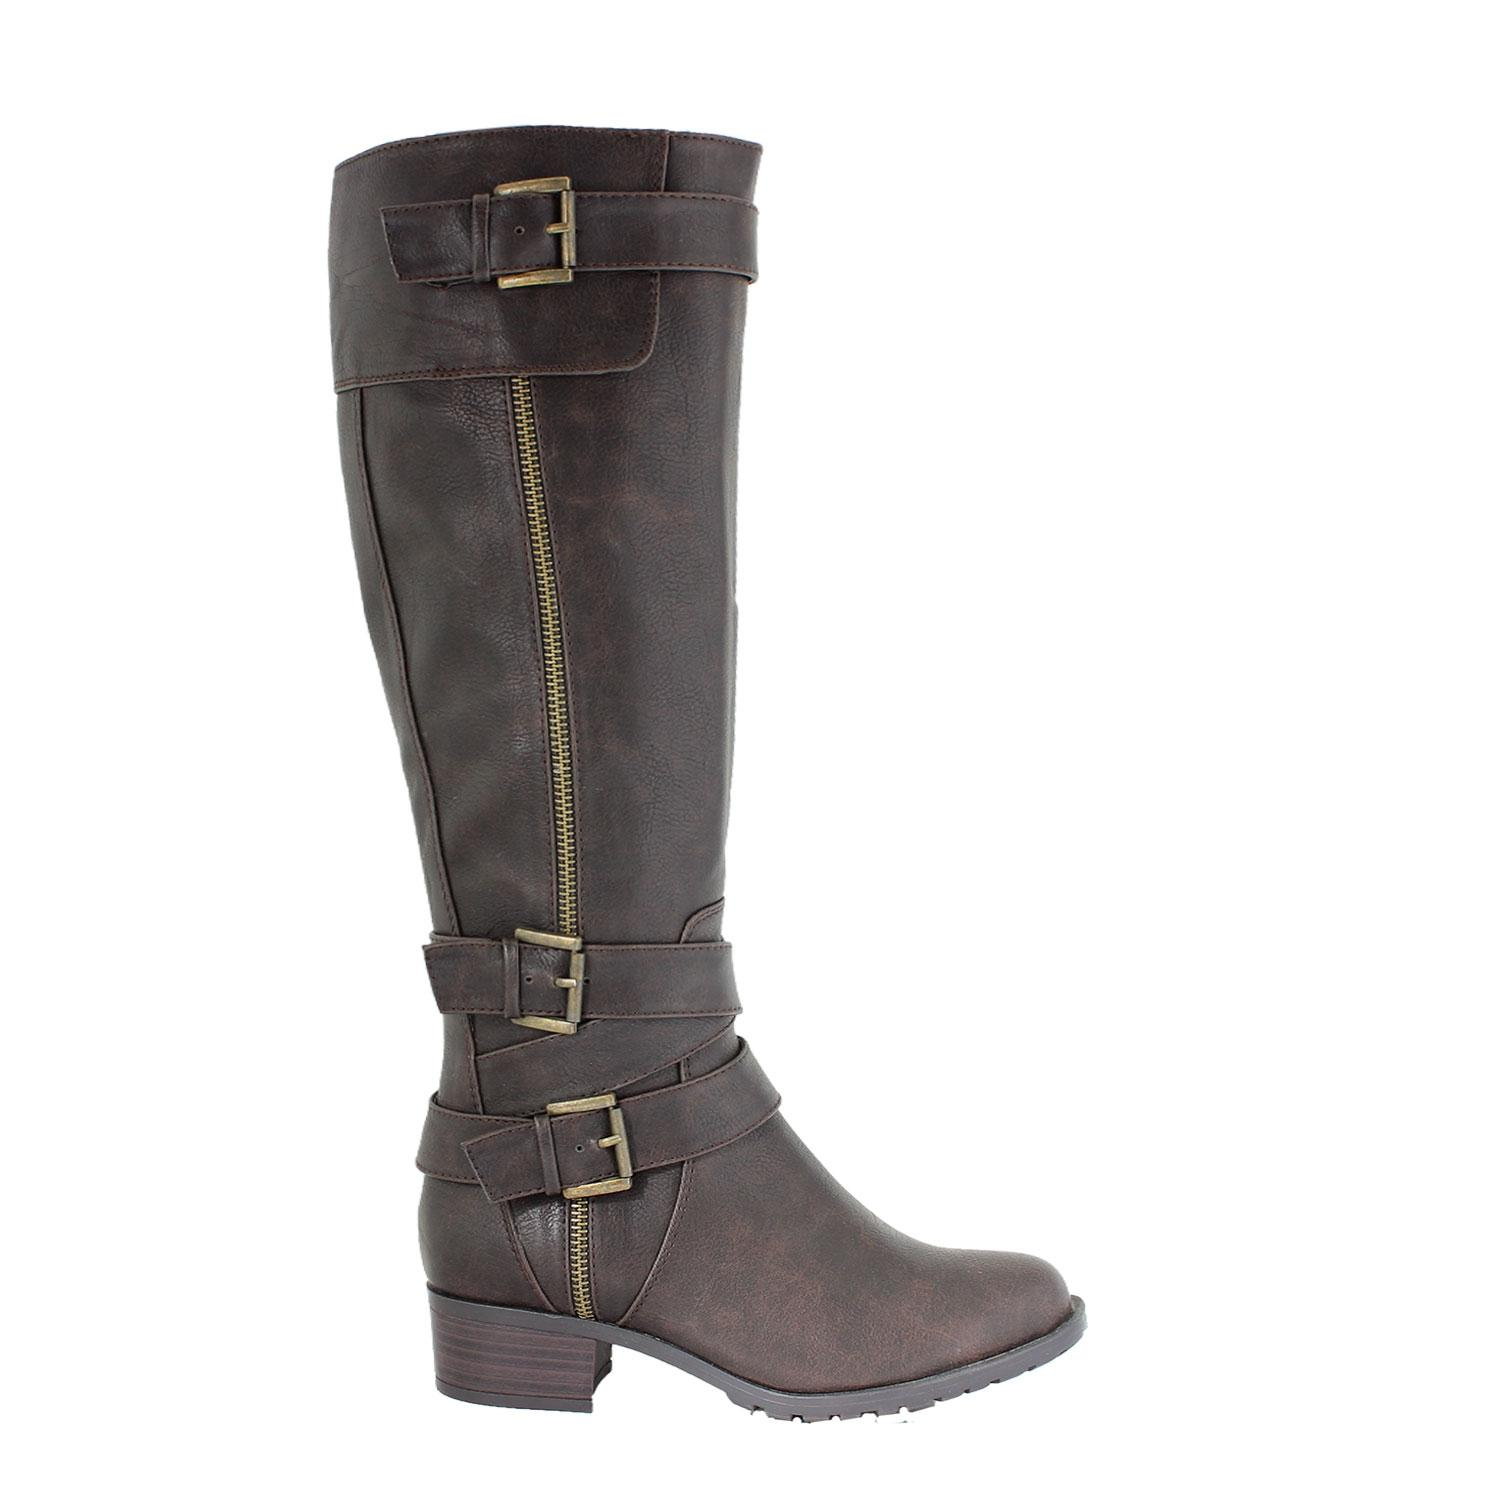 Chocolate Monaco Tumble Wide Calf US Riding If10550b3 Boots/Booties Size US Calf 11 Regular (M, B) b3e0ac